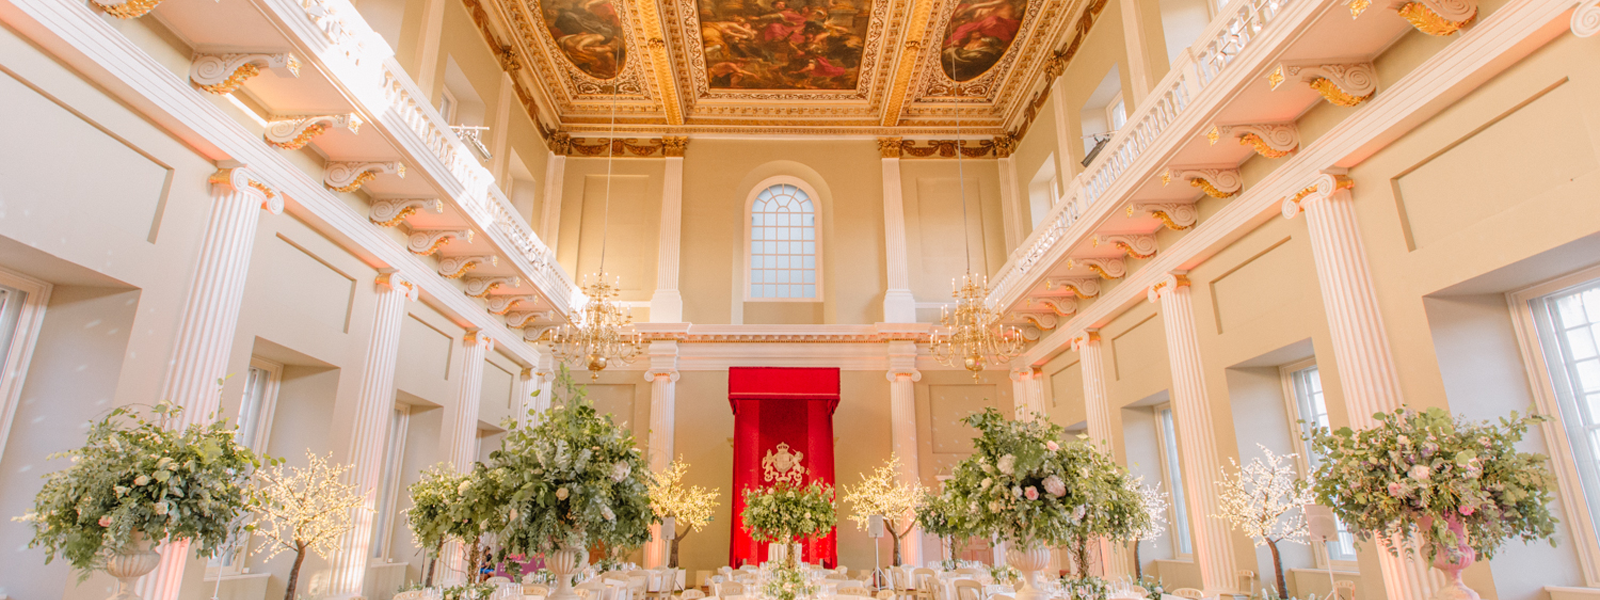 Banqueting House Wedding credit Holly Clark Photography